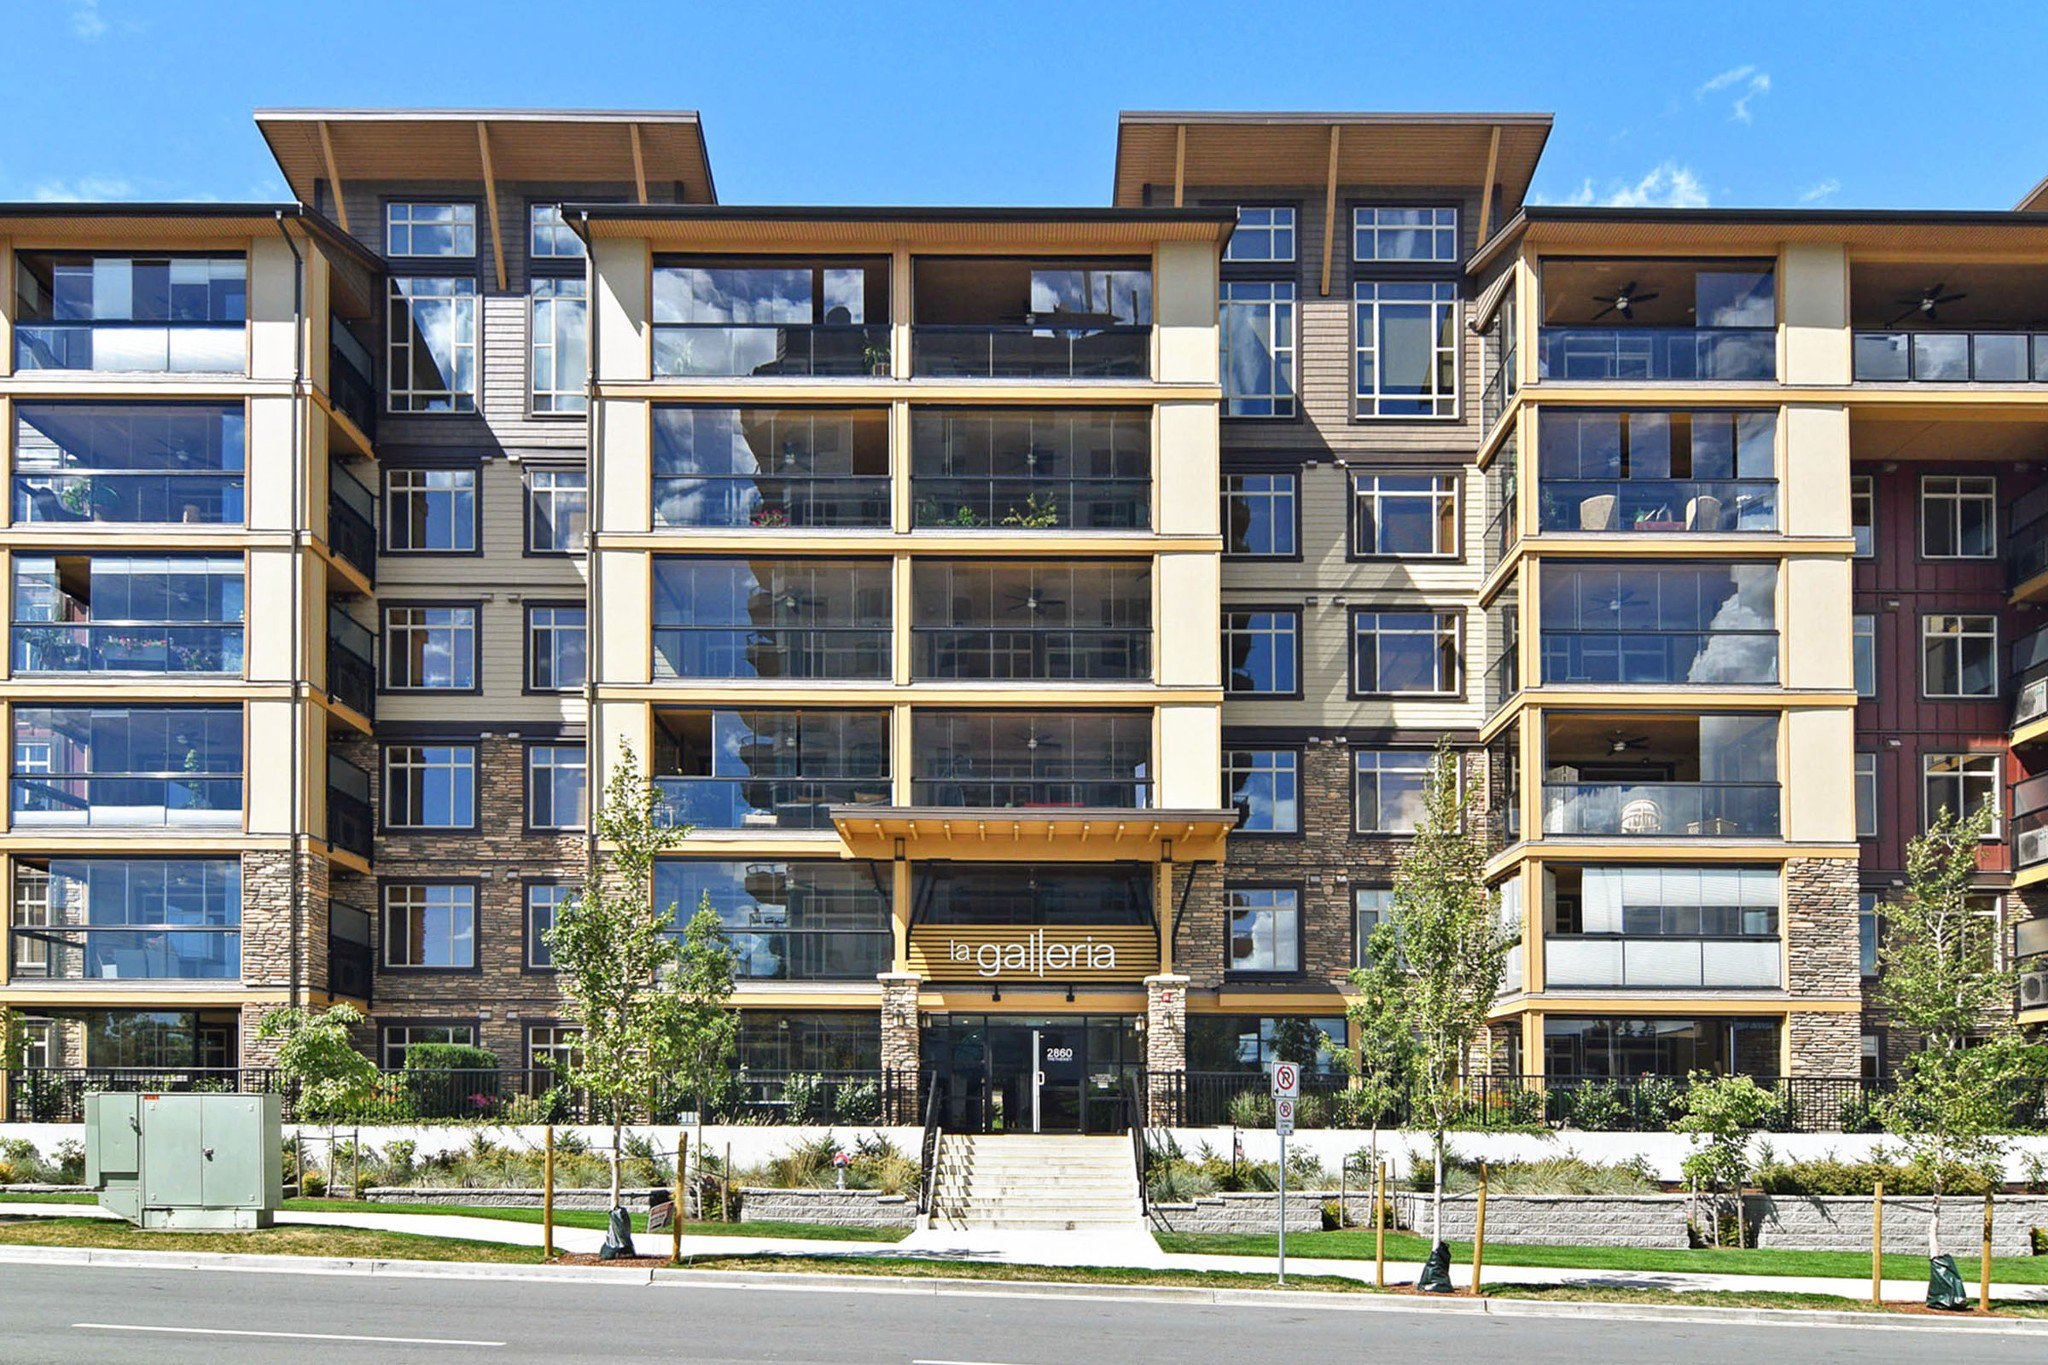 "Main Photo: 412 2860 TRETHEWEY Street in Abbotsford: Central Abbotsford Condo for sale in ""La Galleria"" : MLS®# R2442032"